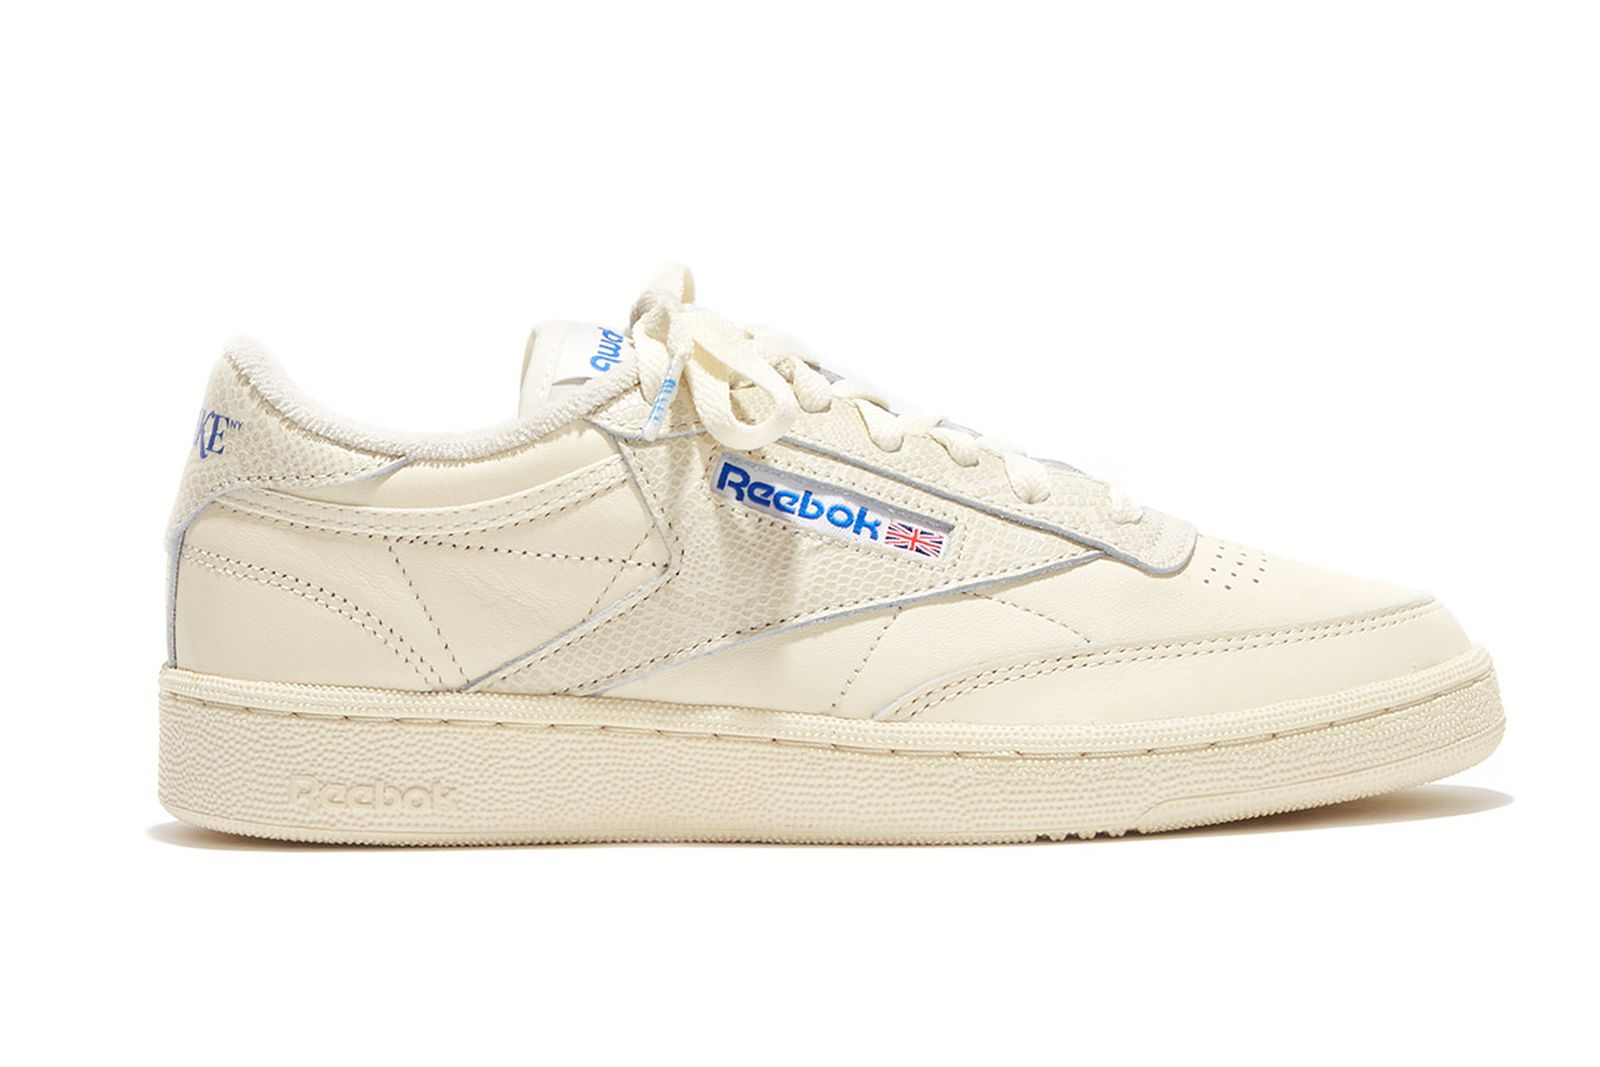 awake-ny-reebok-club-c-classic-leather-release-date-price-01